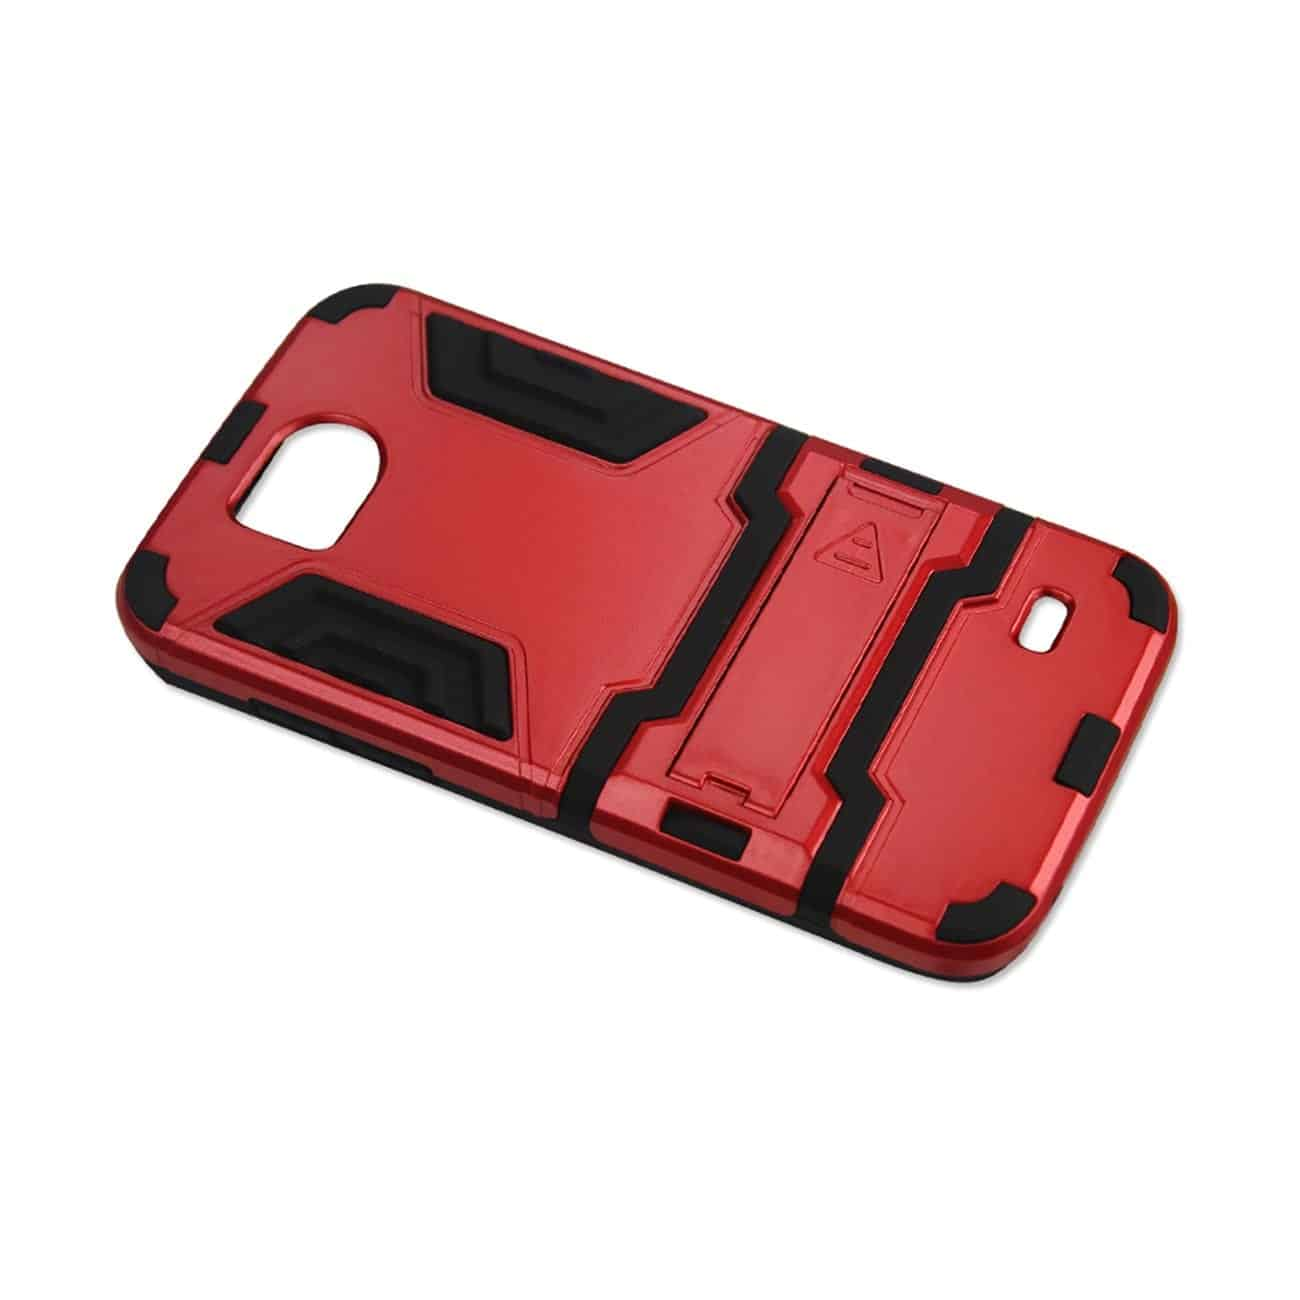 ZTE OVERTURE 2 HYBRID METALLIC CASE WITH KICKSTAND IN BLACK RED